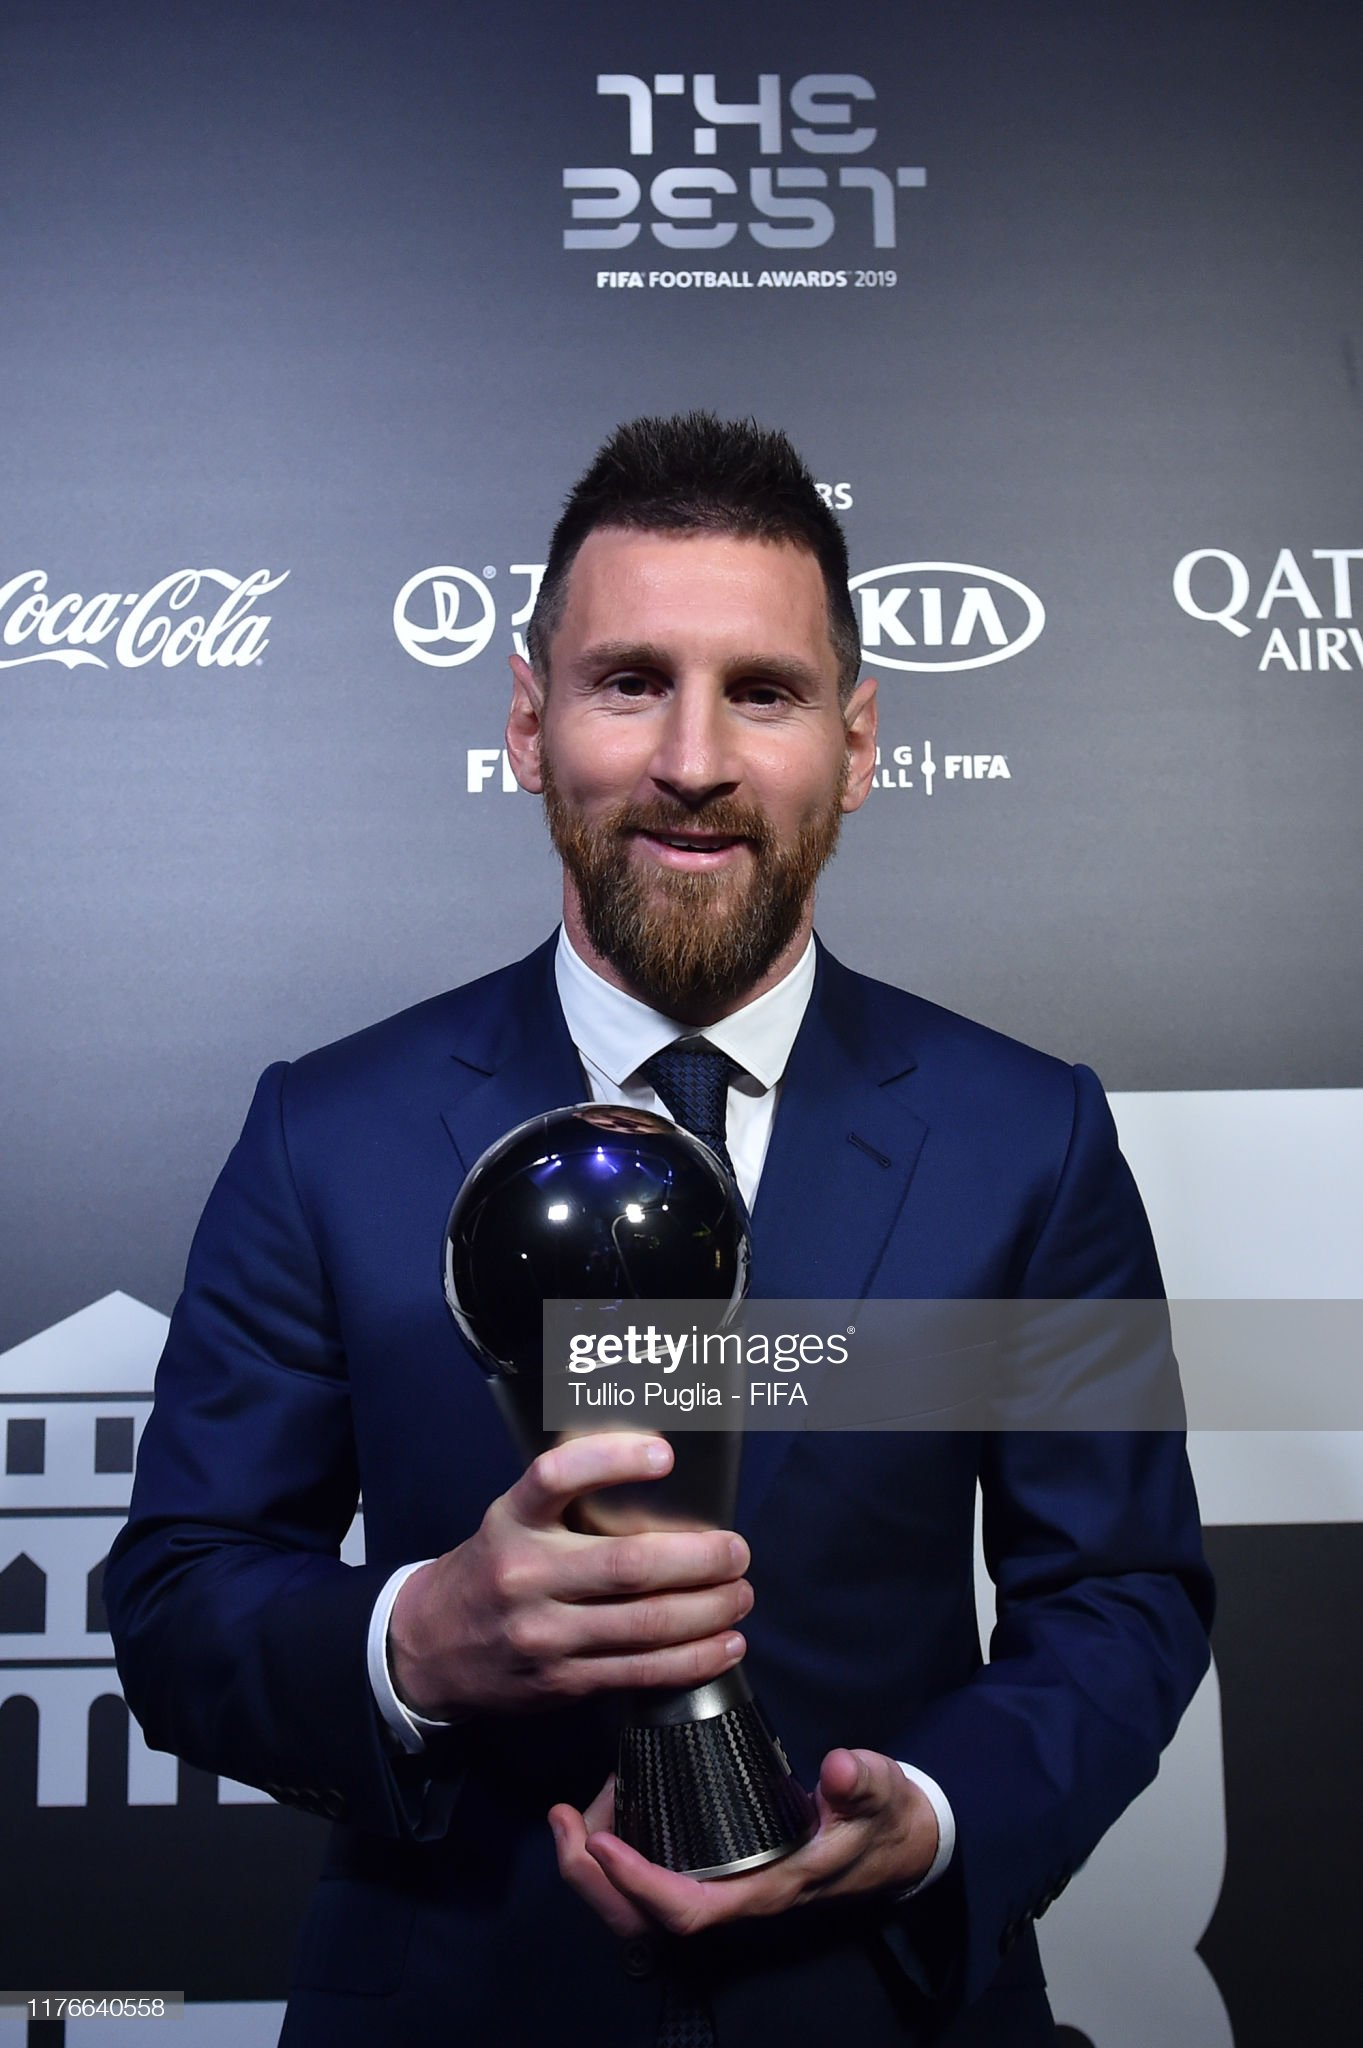 The Best FIFA Football Awards 2019 The-best-fifa-mens-player-award-winner-lionel-messi-of-fc-barcelona-picture-id1176640558?s=2048x2048